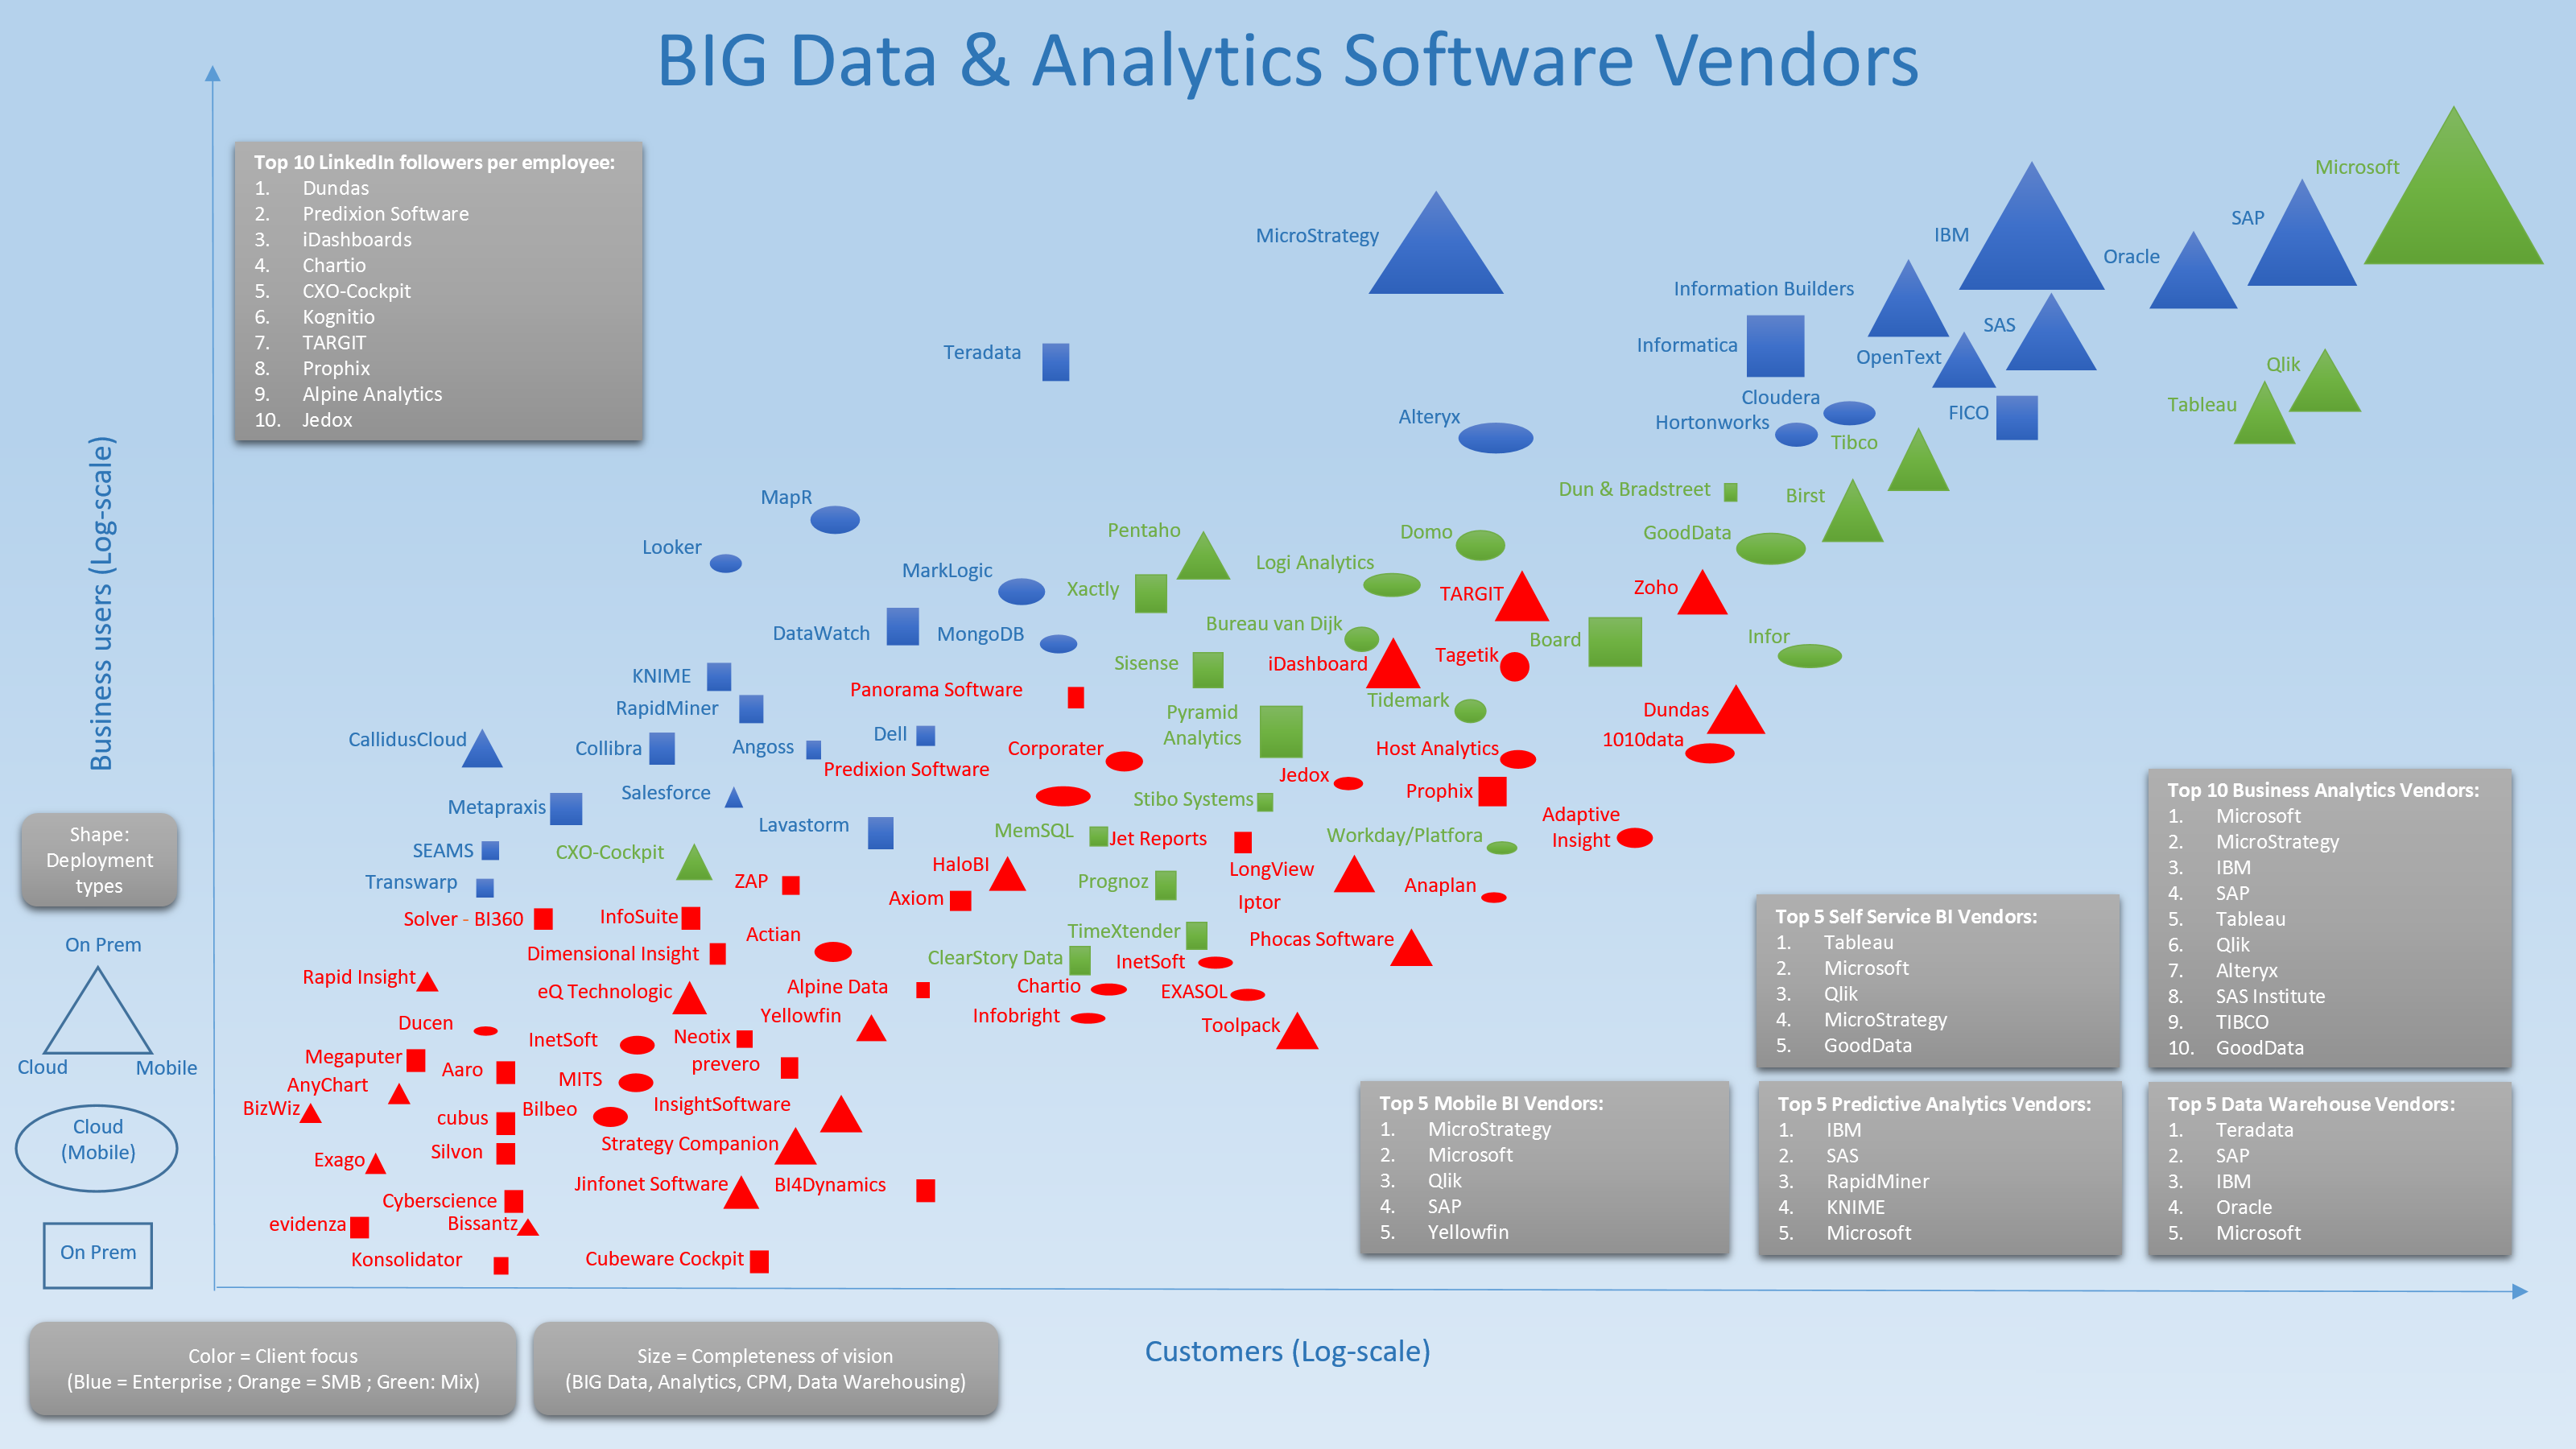 Big Data and analytics vendors